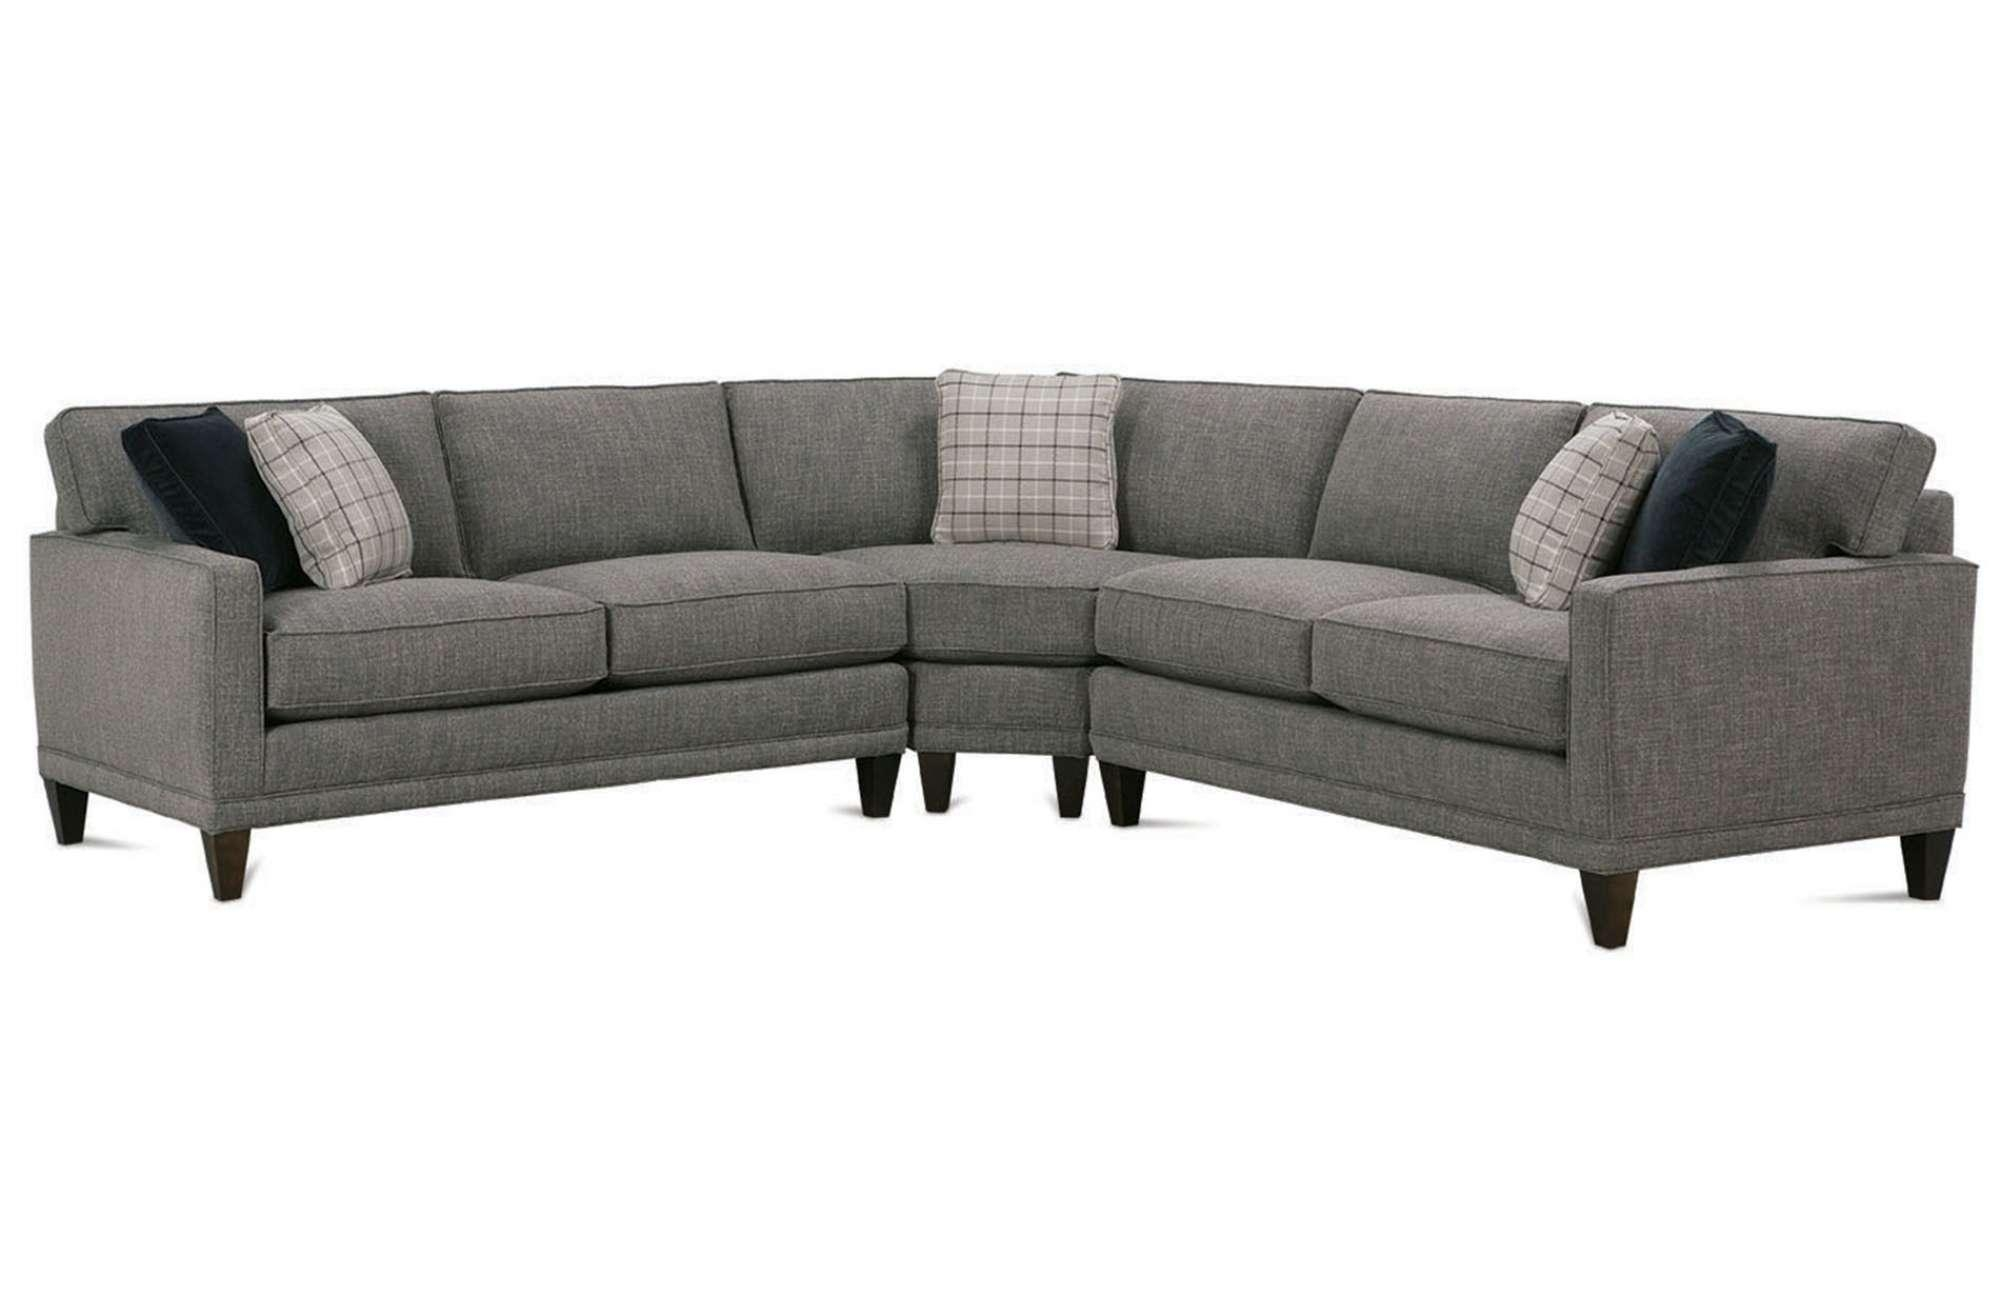 Townsend Sectionalrowe Furniture With Rowe Sectional Sofas (Image 20 of 20)